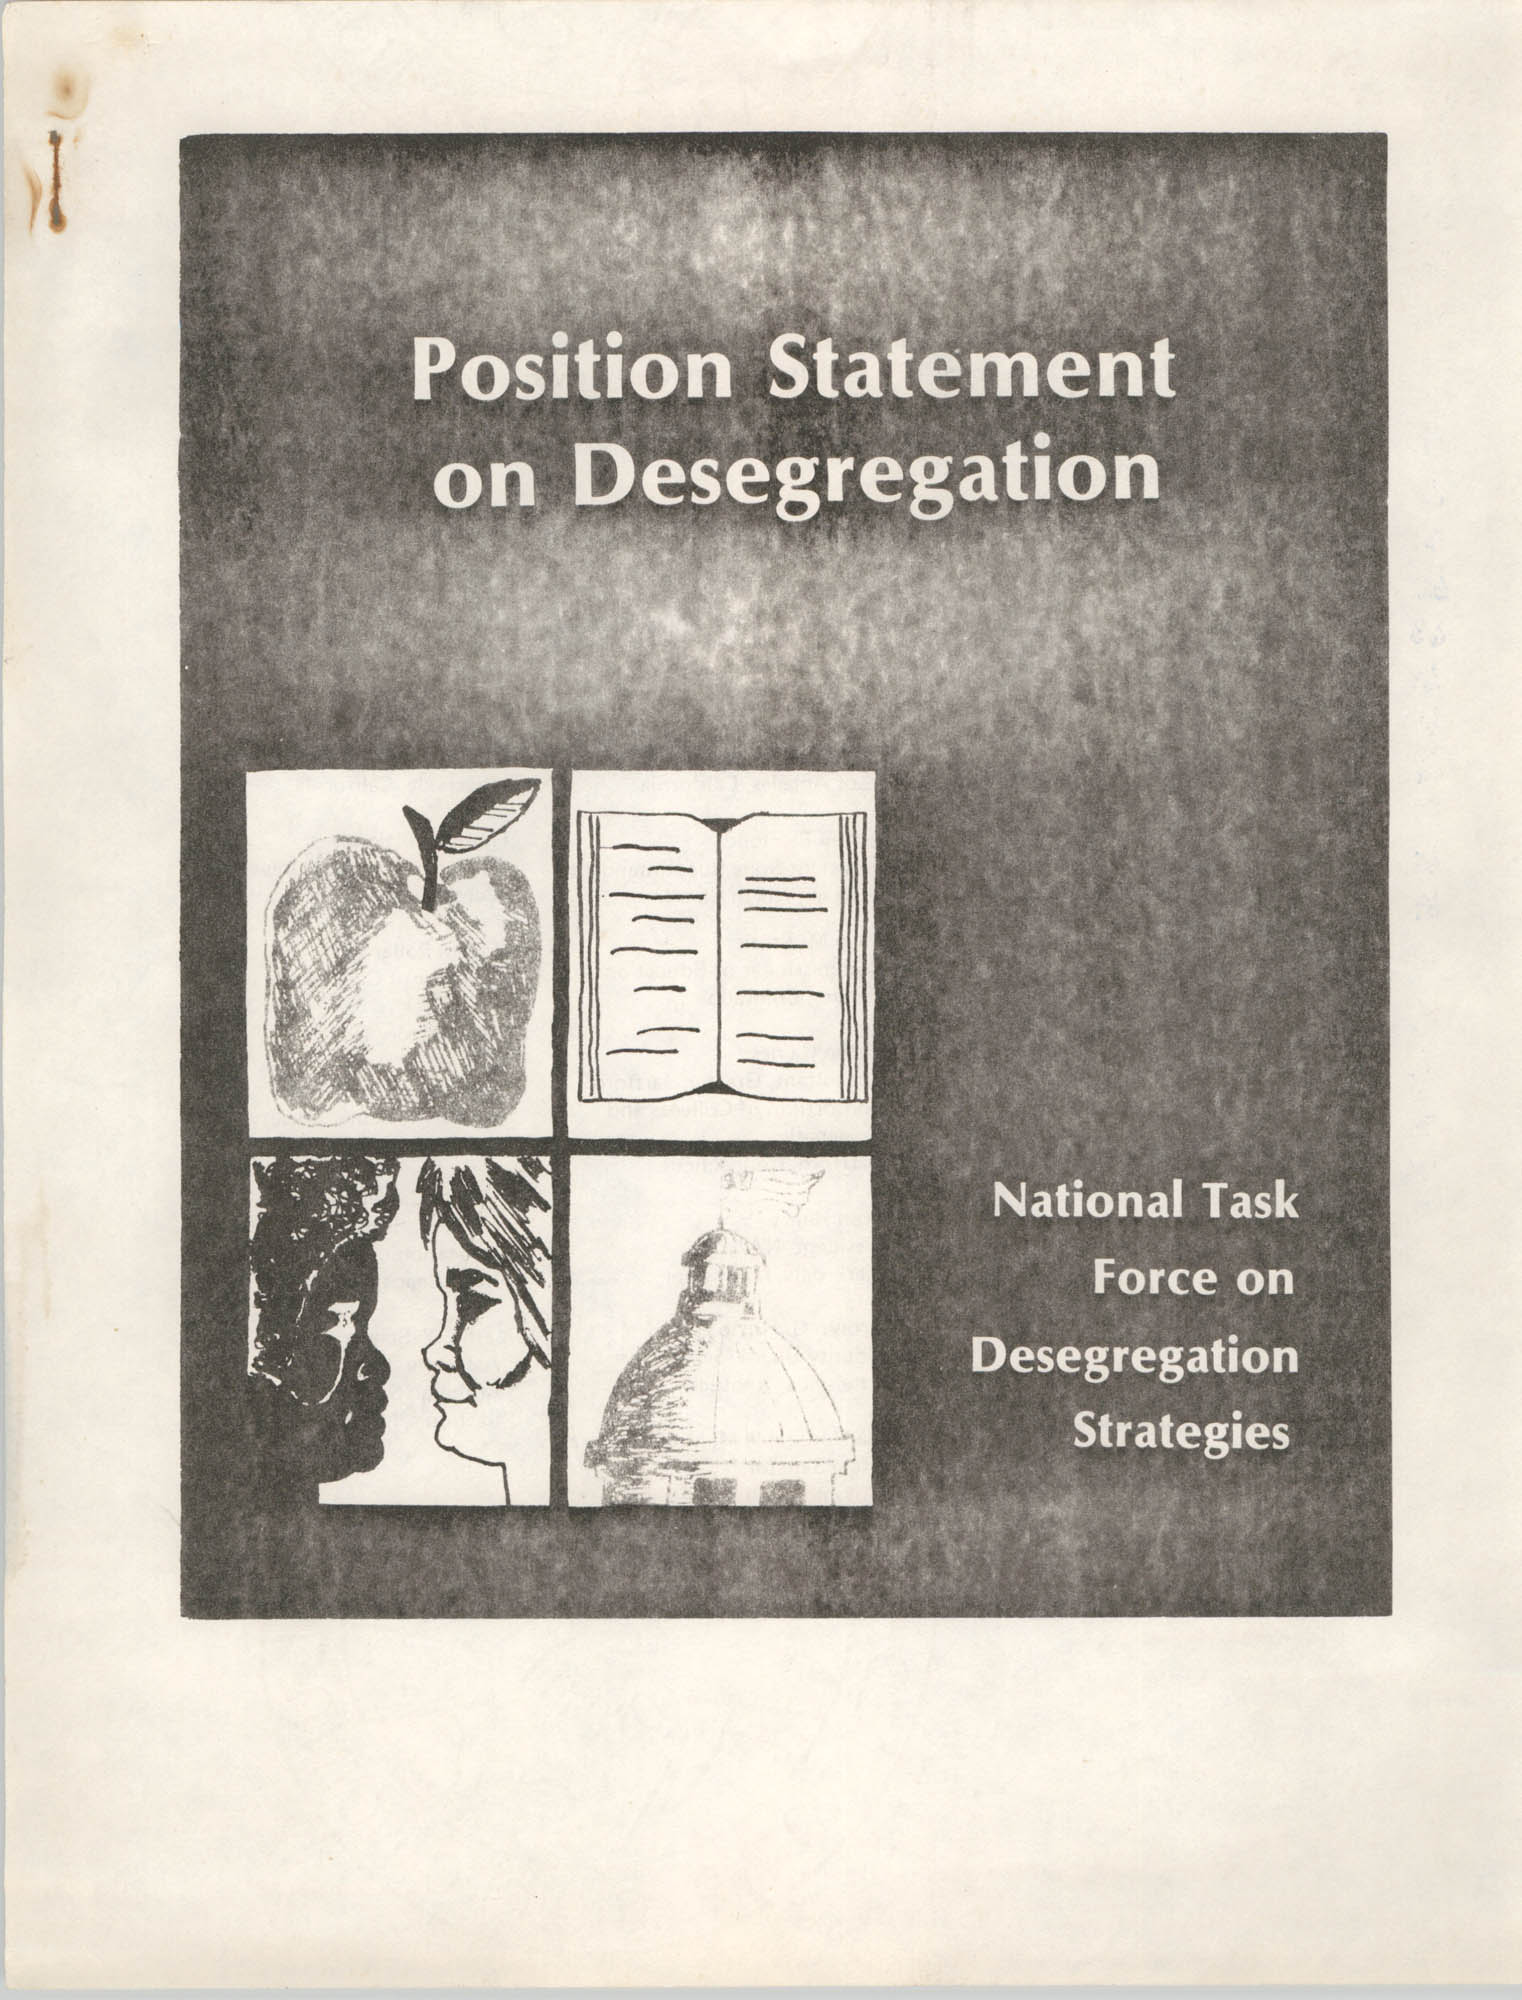 Position Statement on Desegregation, National Task Force on Desegregation Strategies, Front Cover